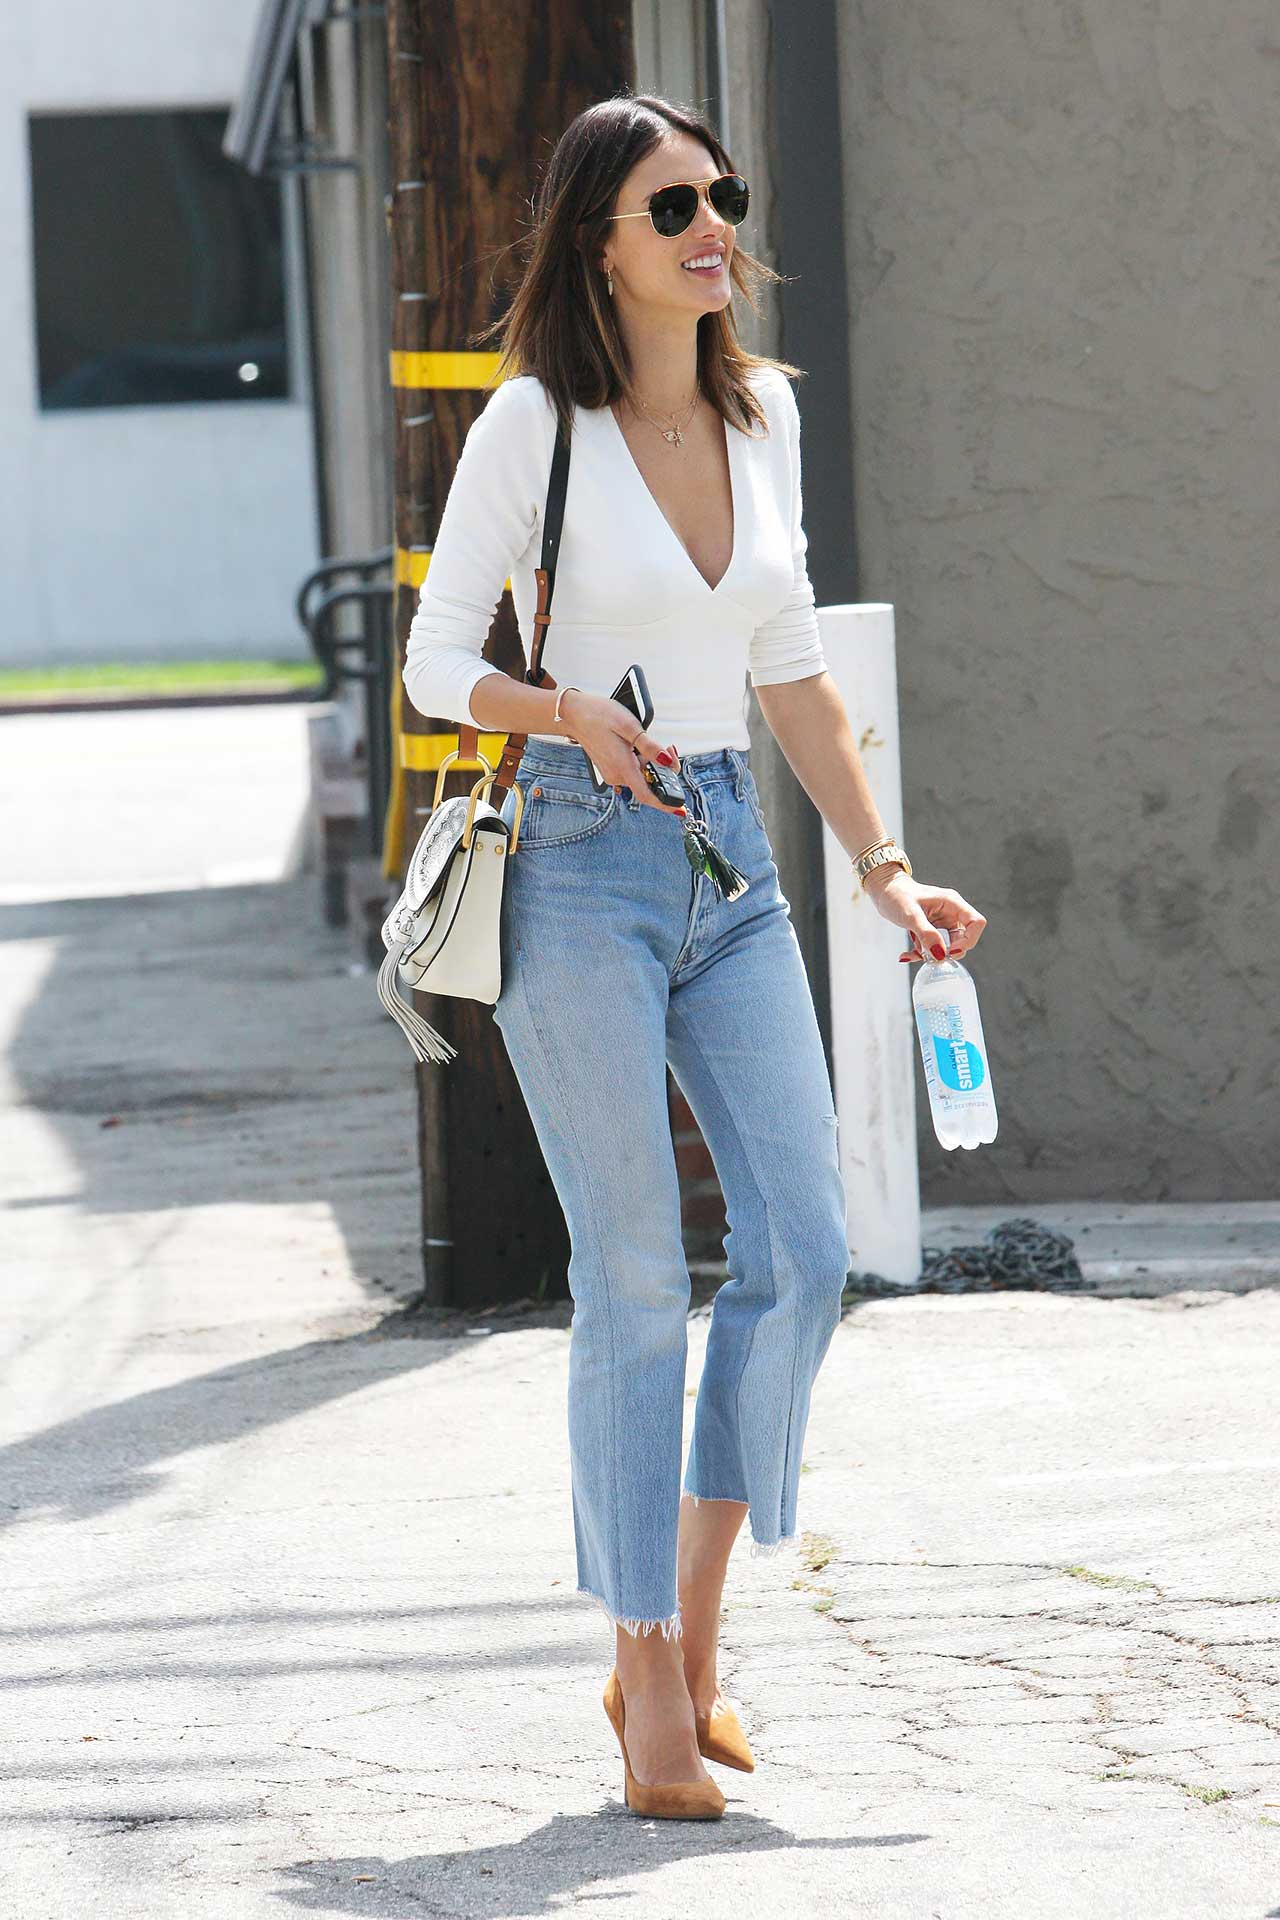 Alessandra-Ambrosio-REDONE-Levis-vintage-jeans-cropped-flare.jpg